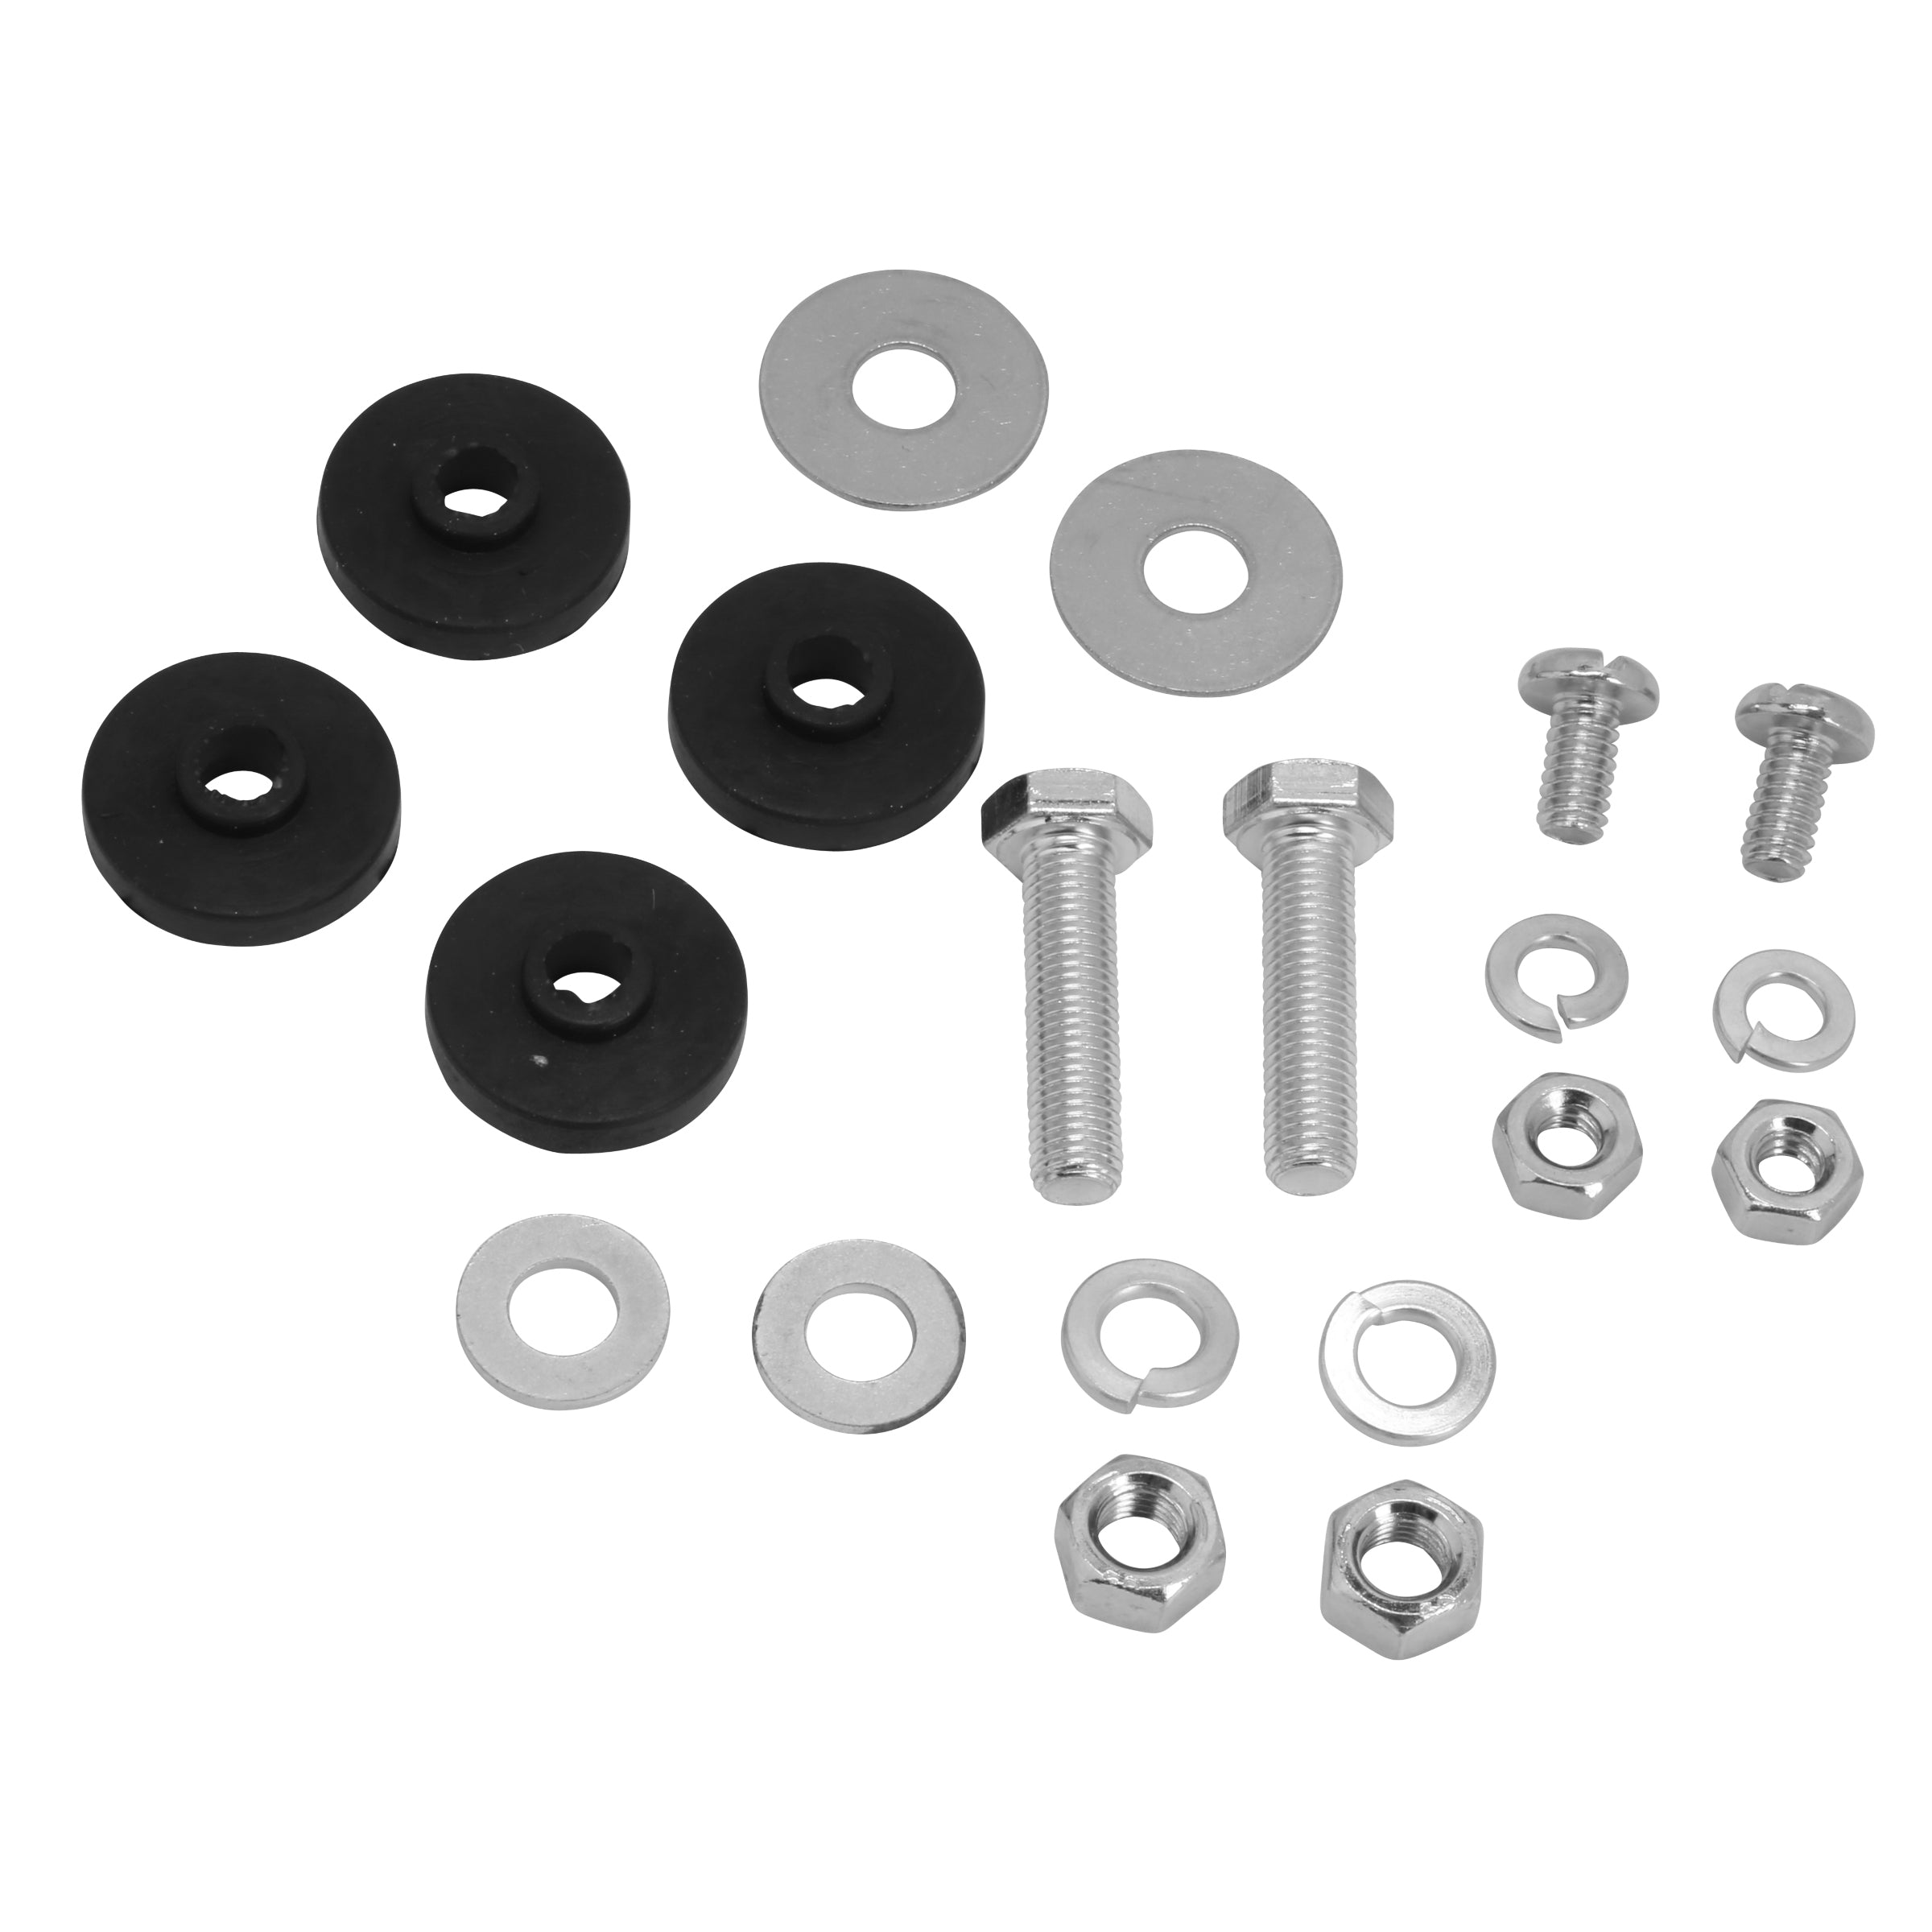 Rear Fender Brace Hardware Kit • 1937-40